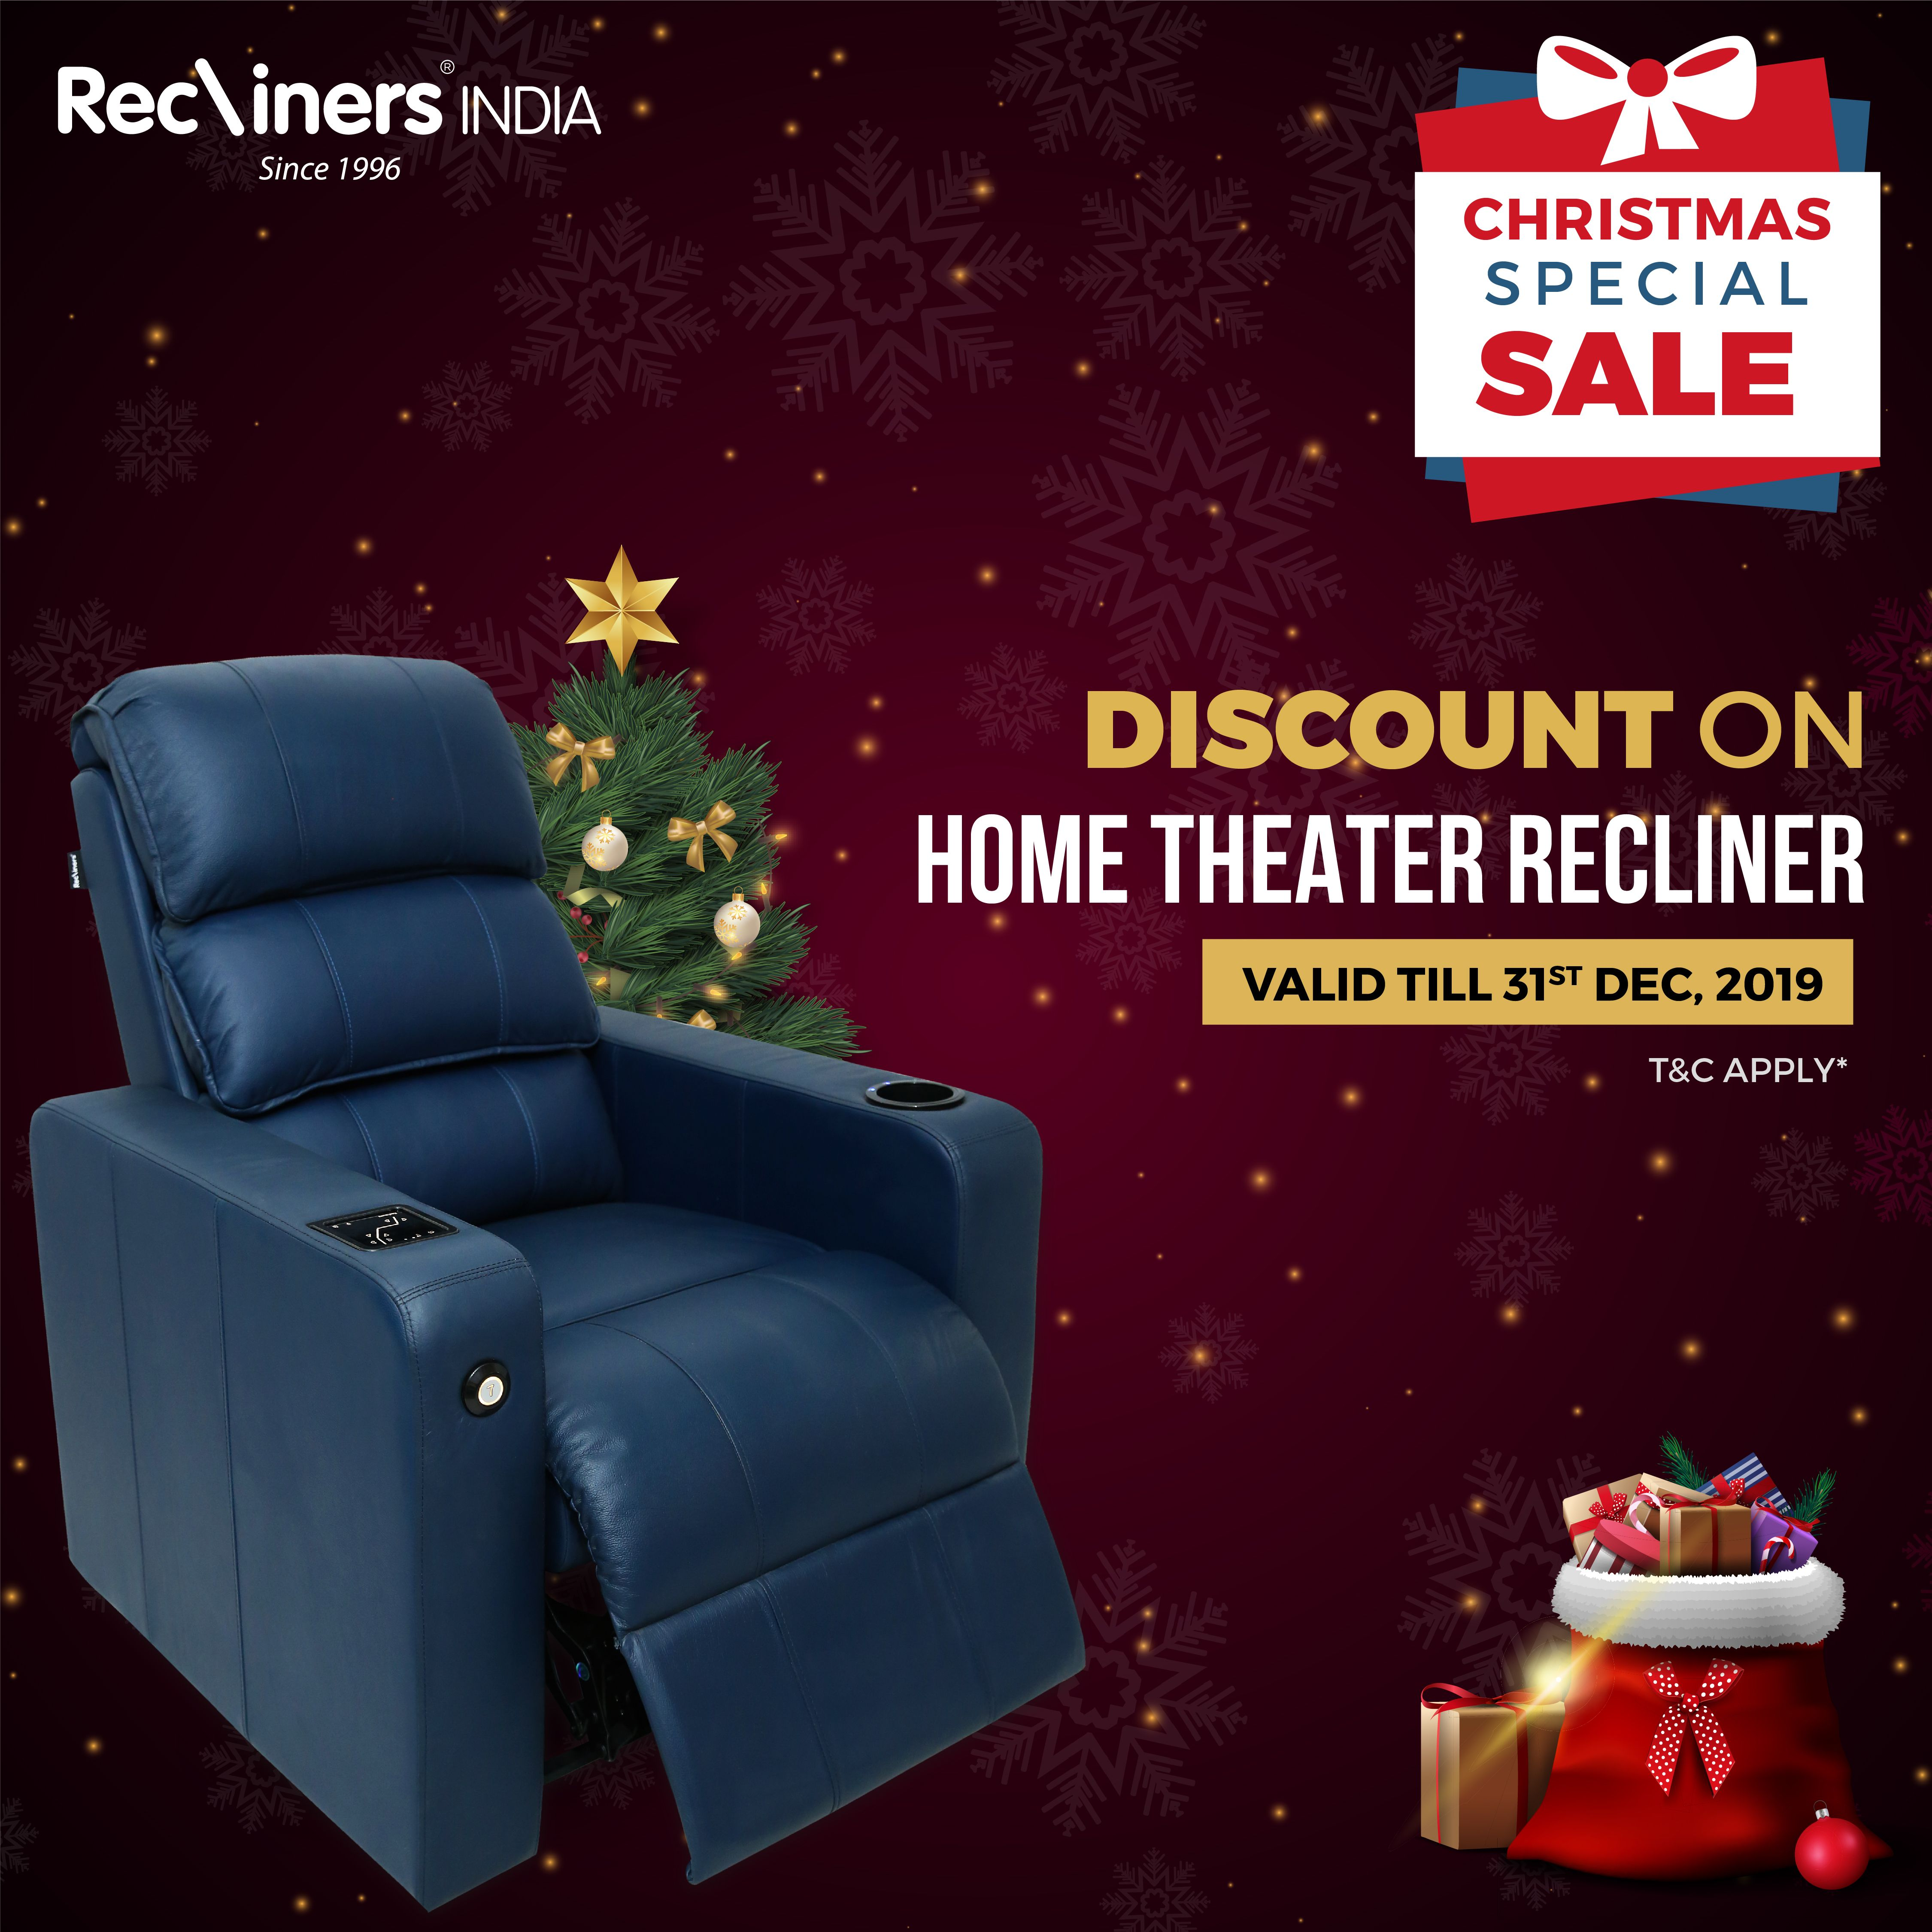 Recliner CHRISTMAS SPECIAL SALE Theater recliners